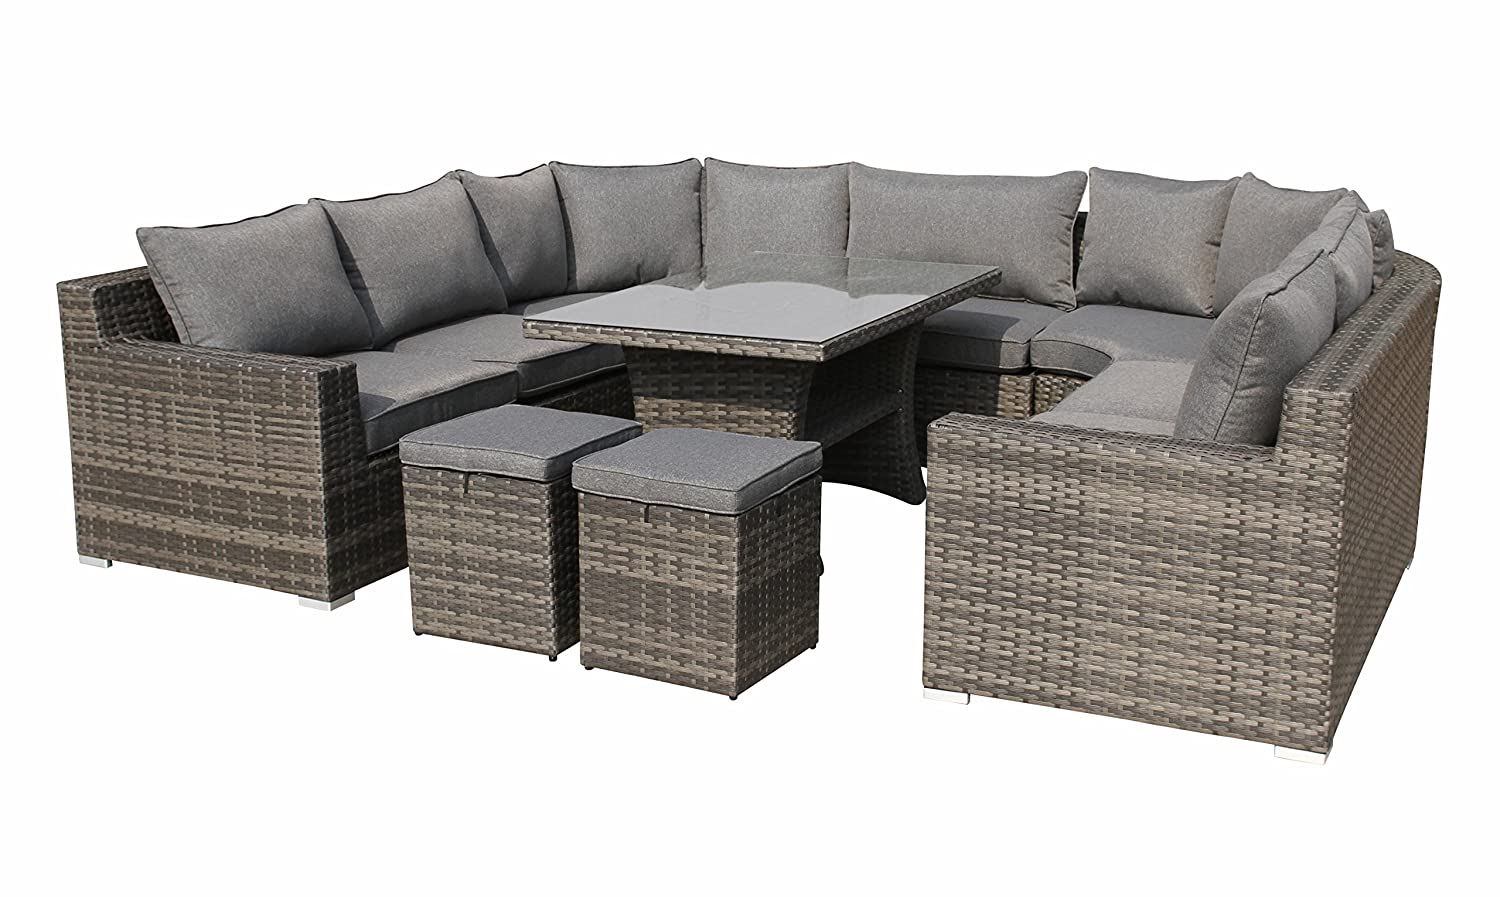 xxl hohe dining poly rattan lounge epic inkl zwei hockern von pure home garden g nstig. Black Bedroom Furniture Sets. Home Design Ideas